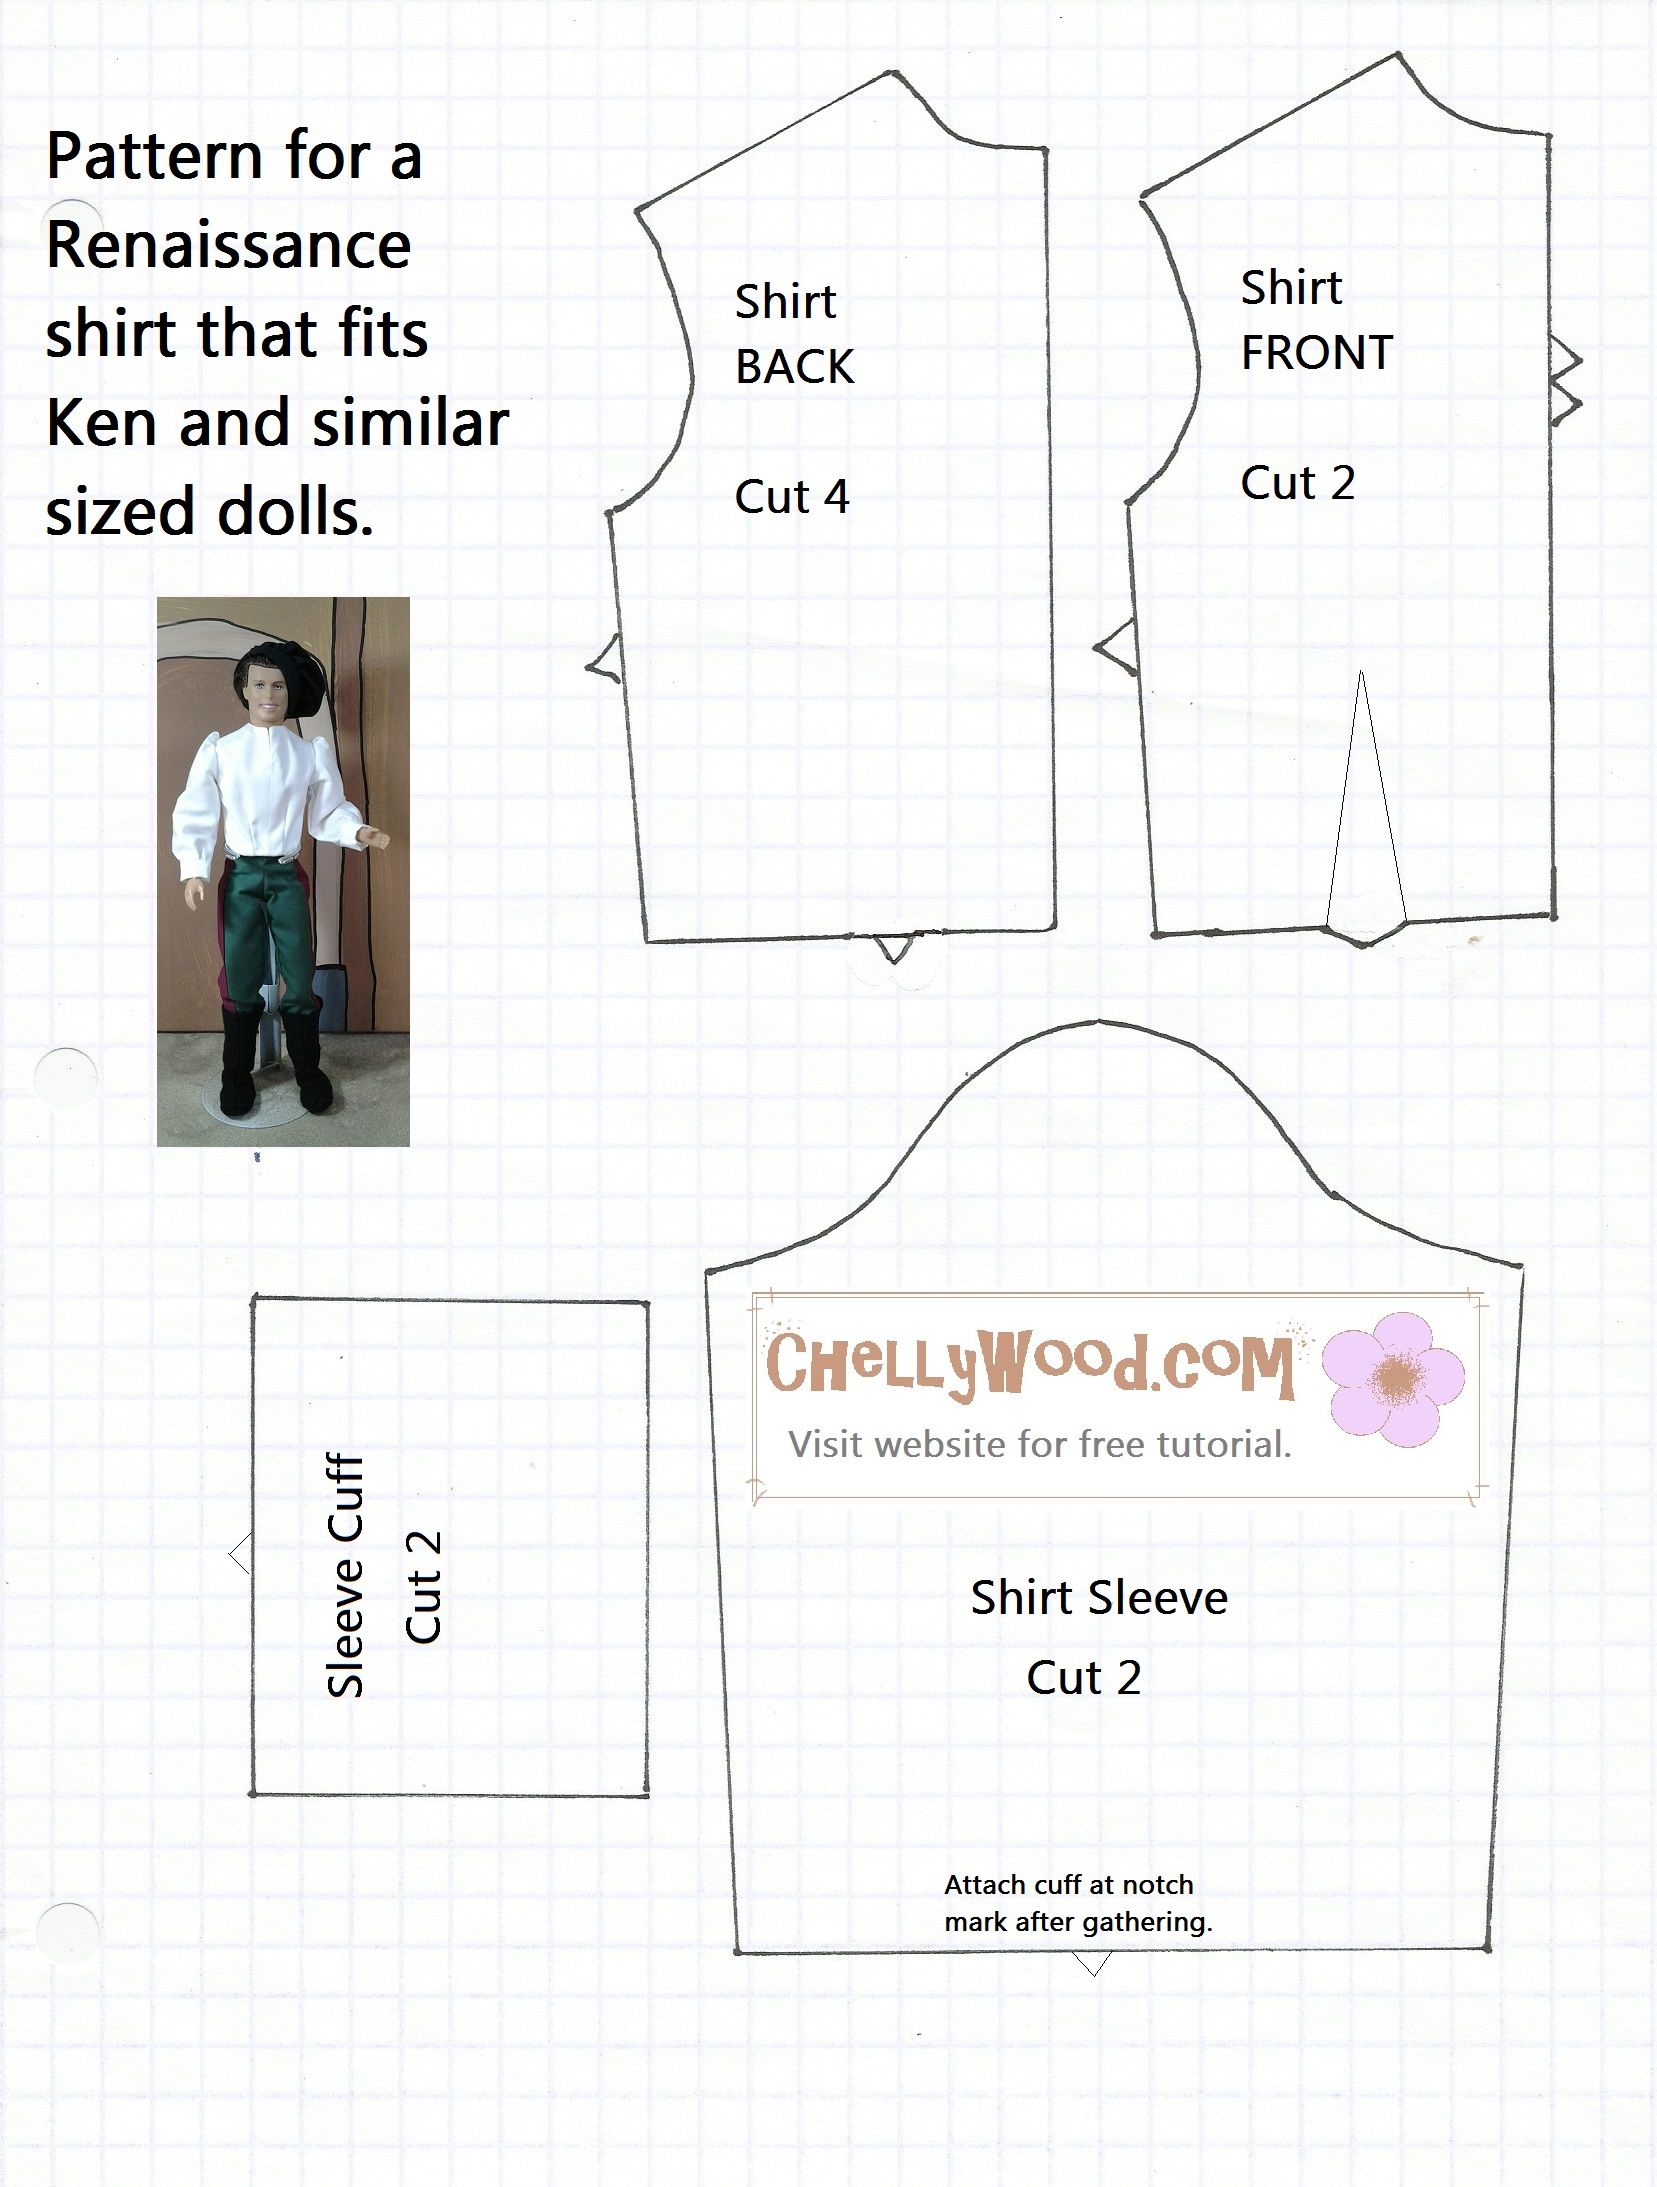 photograph about Free Printable Ken Doll Clothes Patterns named no cost printable ken doll clothing designs - Google Look